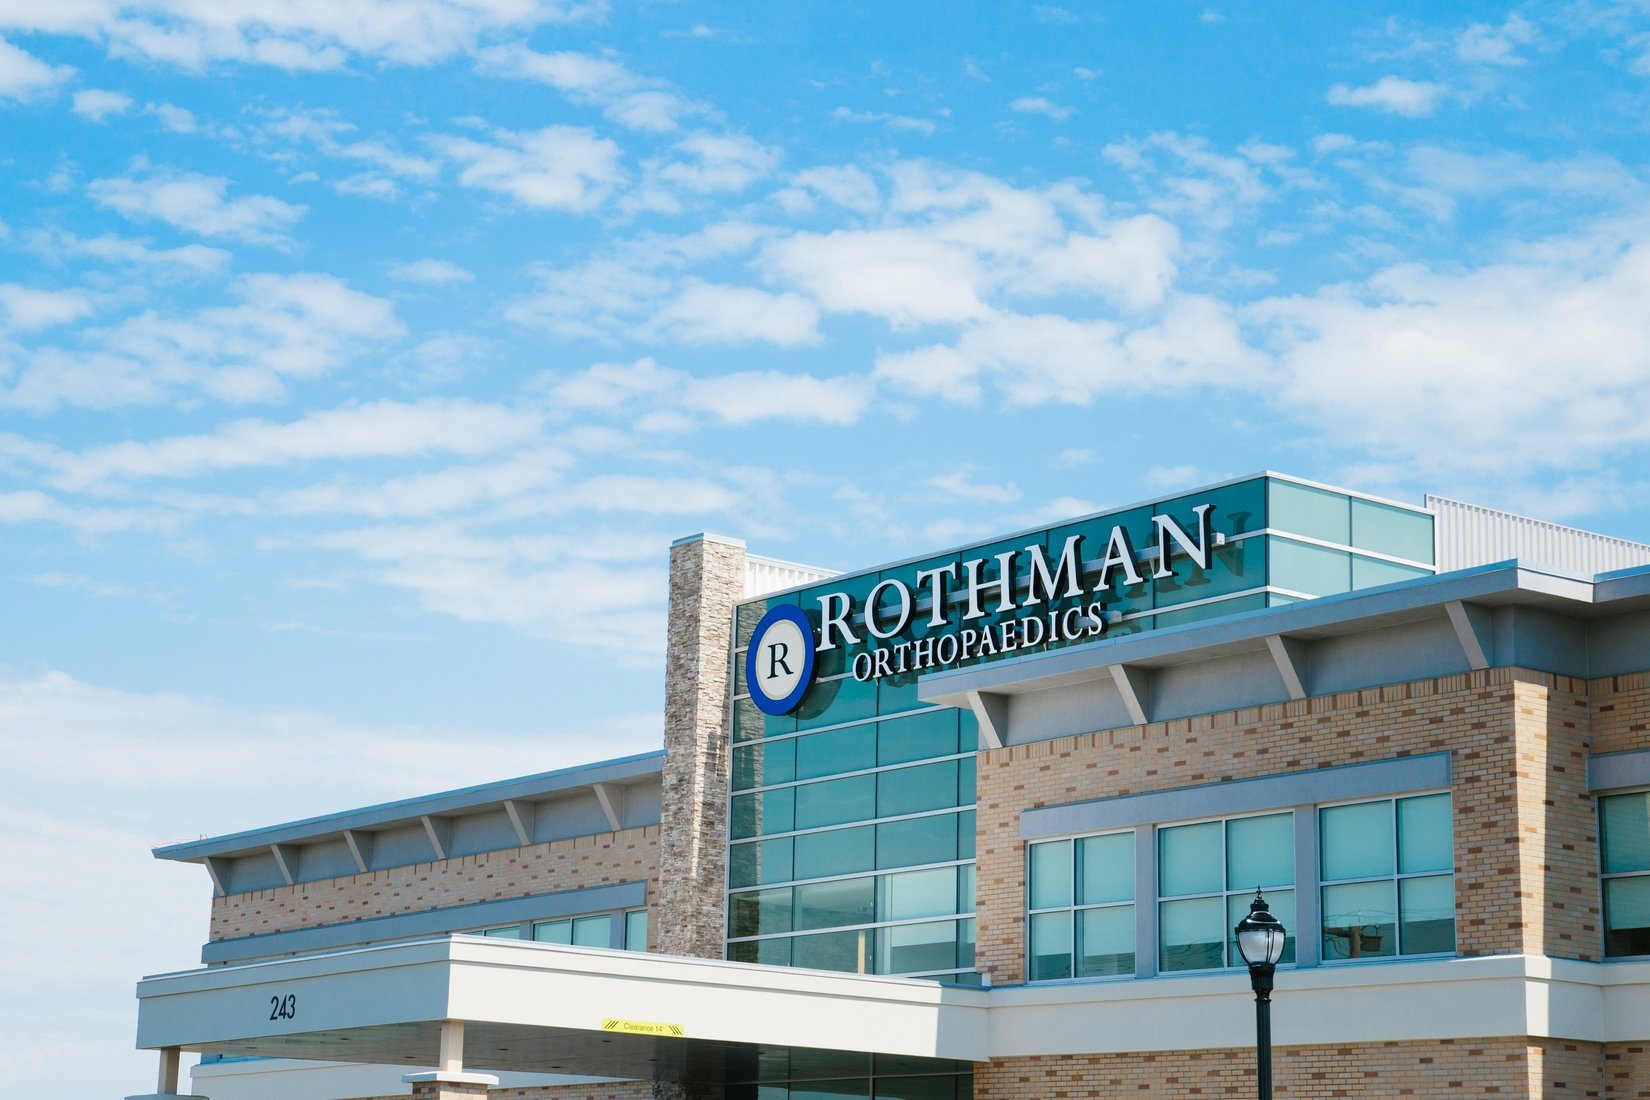 Three new leases bring the Rothman building to full occupancy.